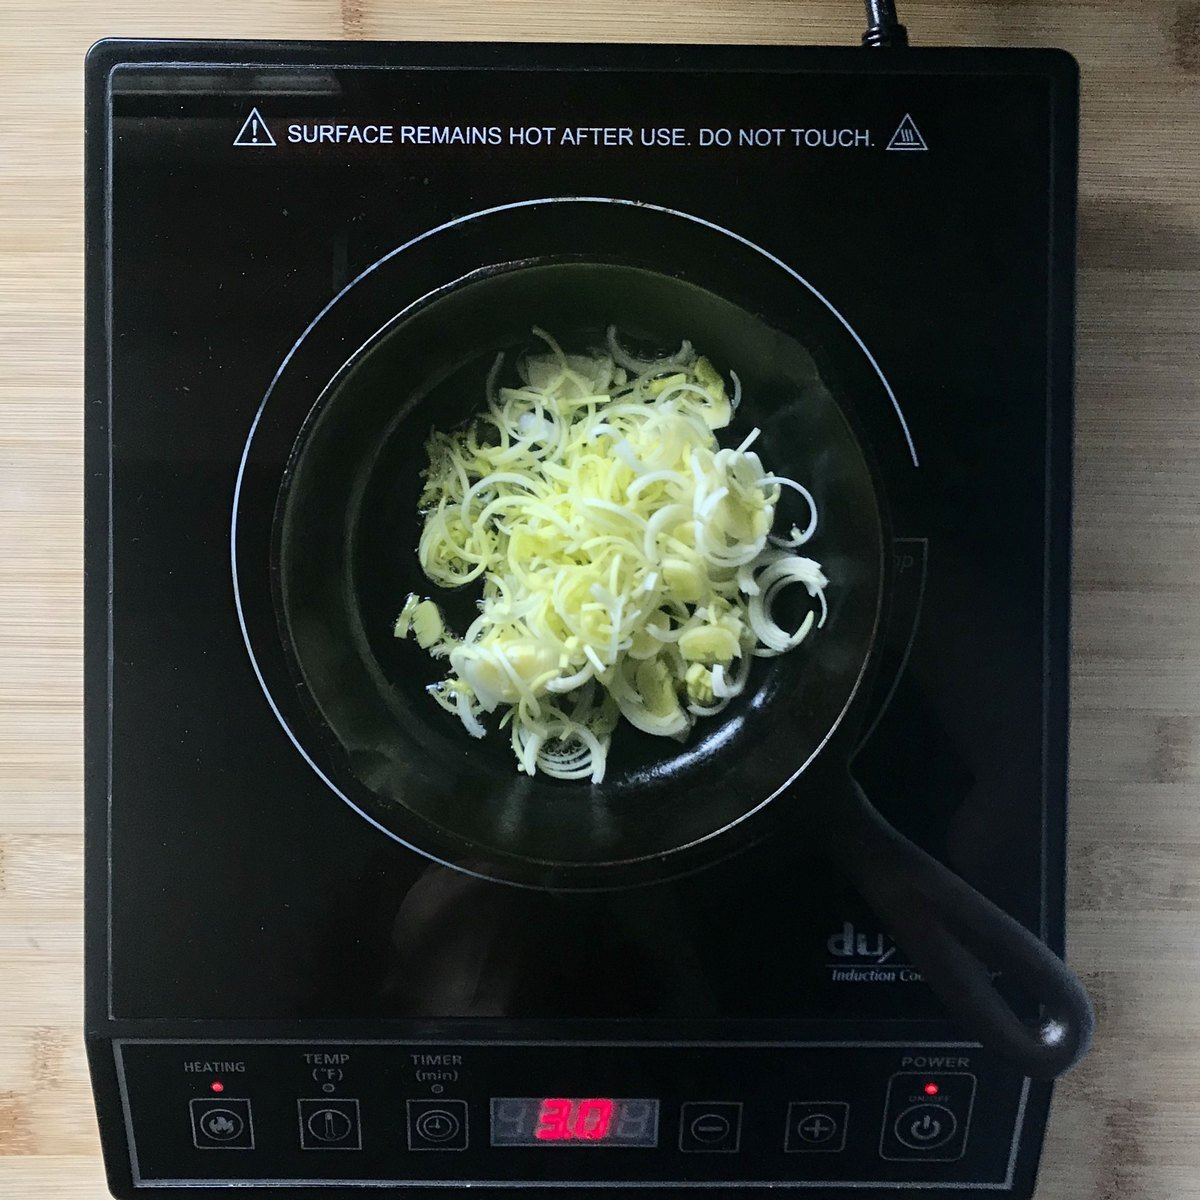 Sauteed leeks in a cast-iron pan.